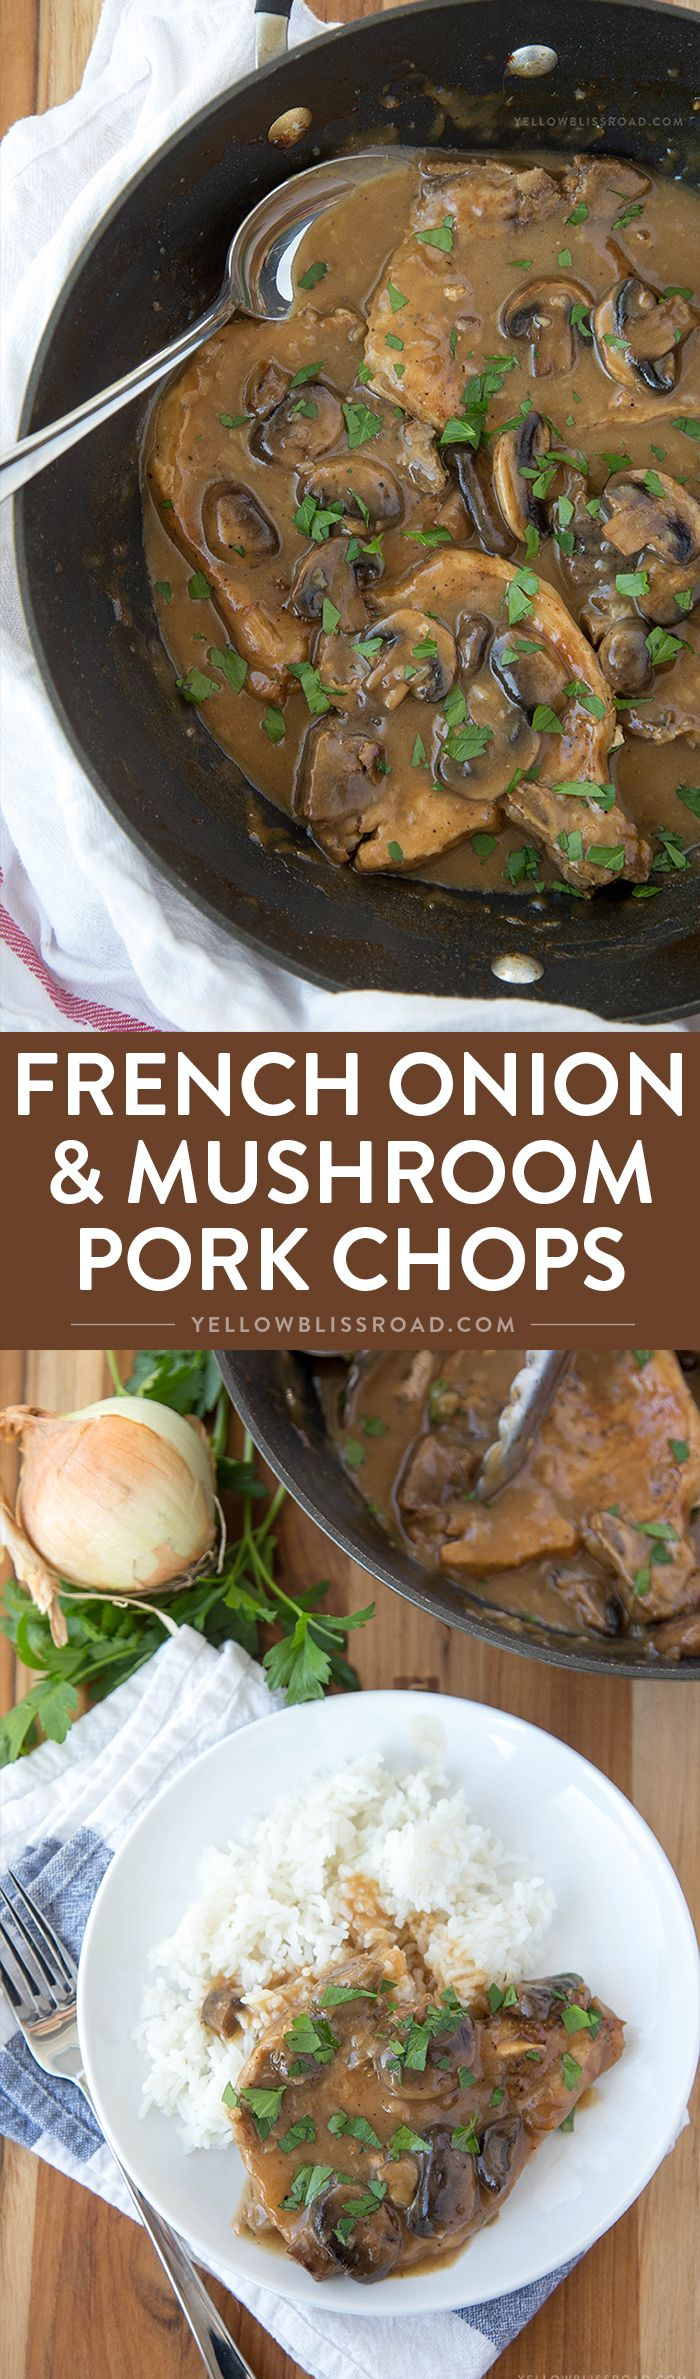 French Onion and Mushroom Pork Chops with Gravy – An easy weeknight dinner with just 4 ingredients.